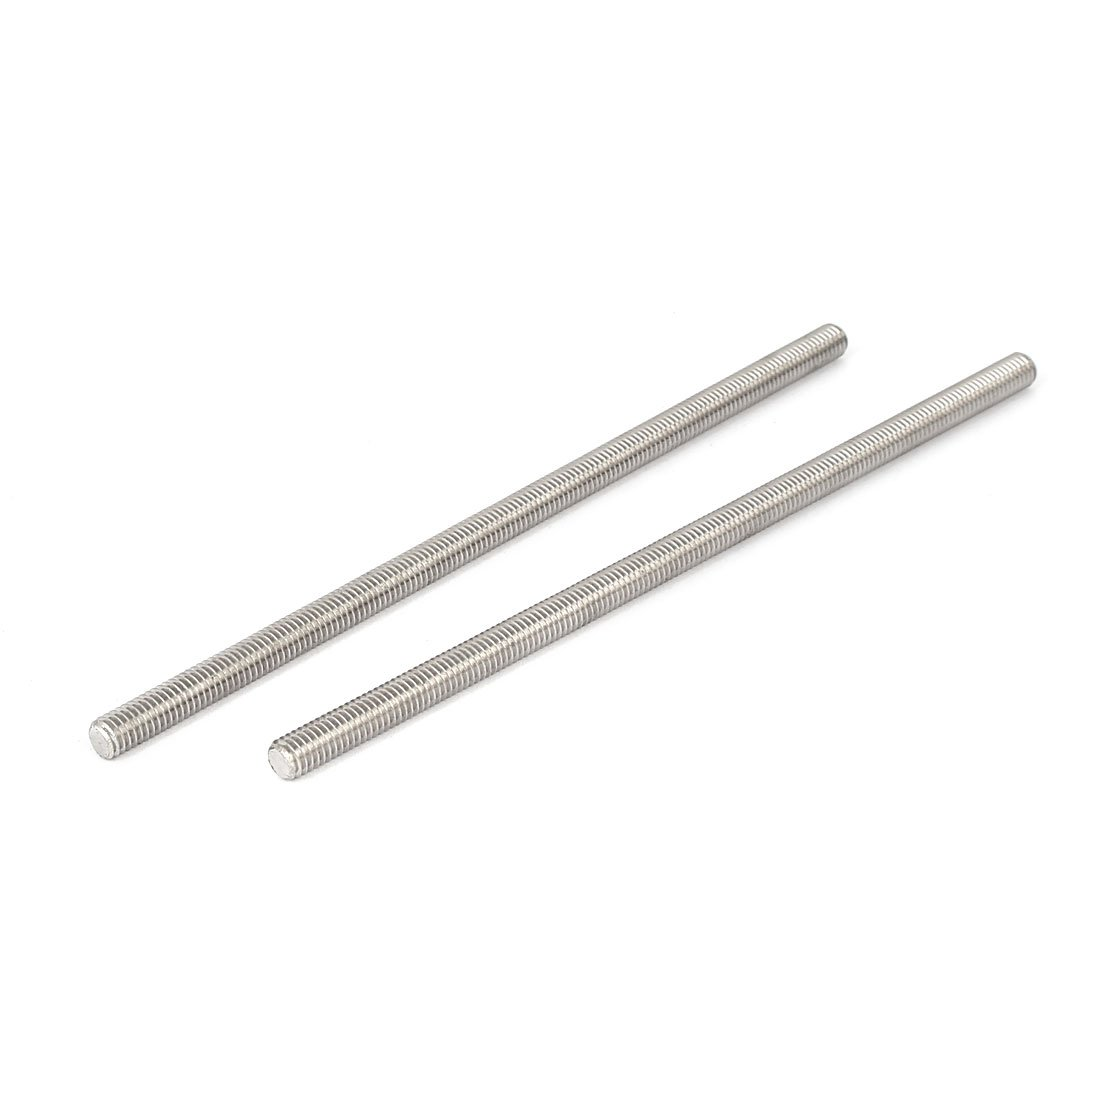 uxcell M6 x 150mm 304 Stainless Steel Fully Threaded Rod Bar Studs Hardware 5 Pcs